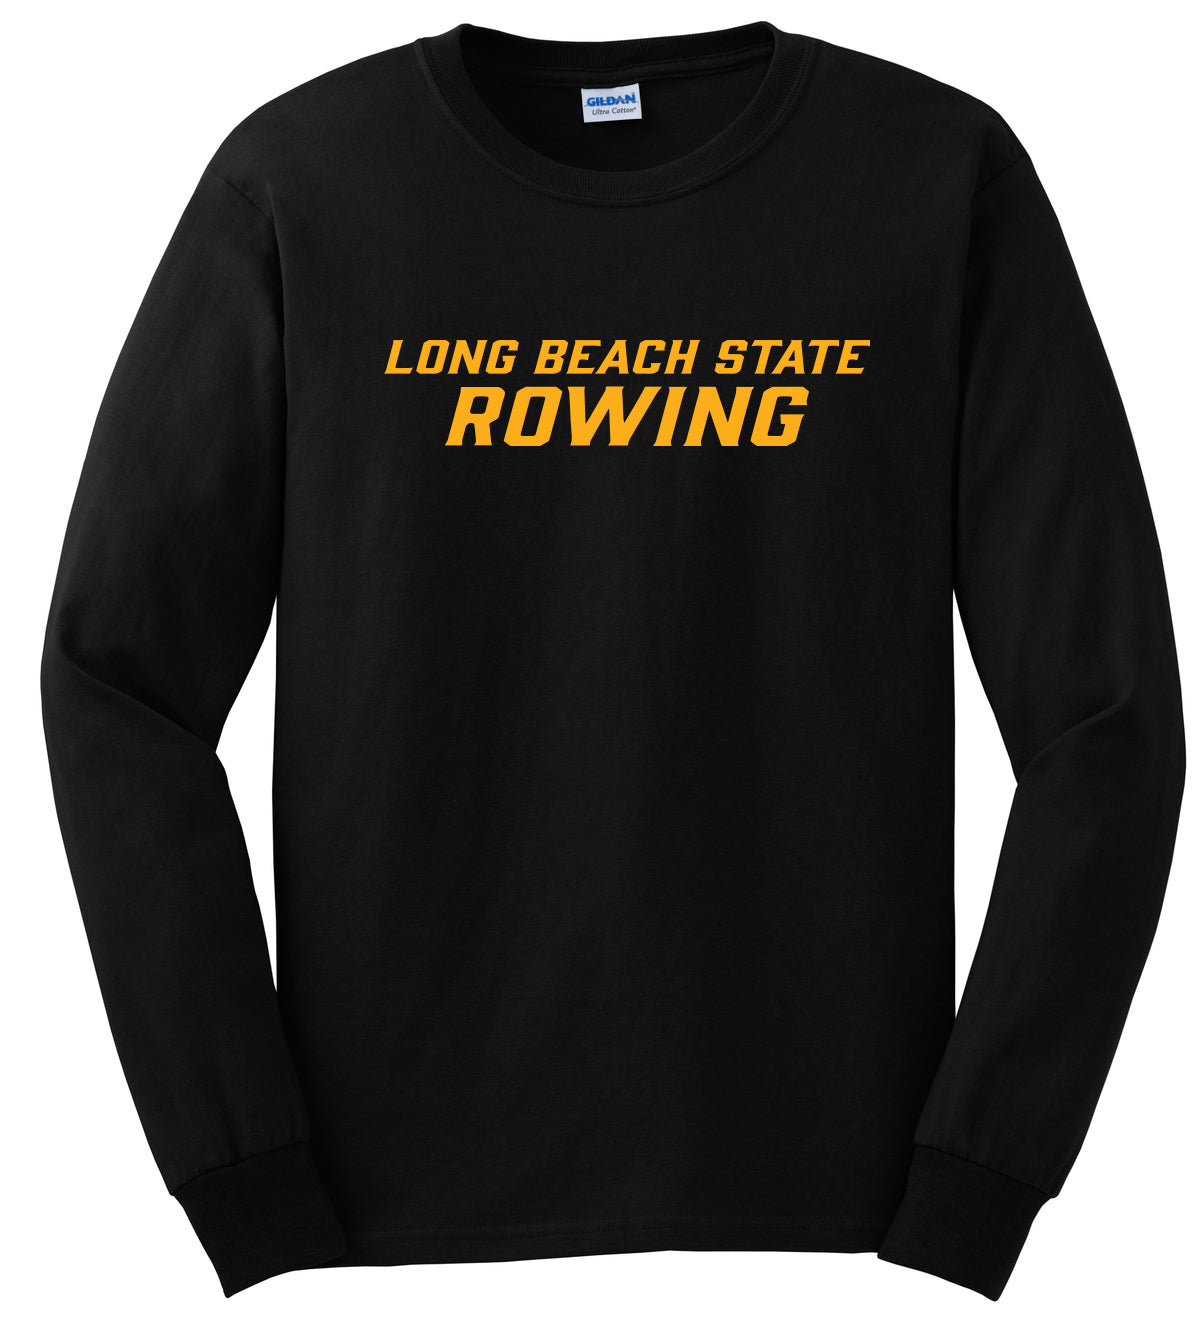 Custom Long Beach Rowing Long Sleeve Cotton T-Shirt